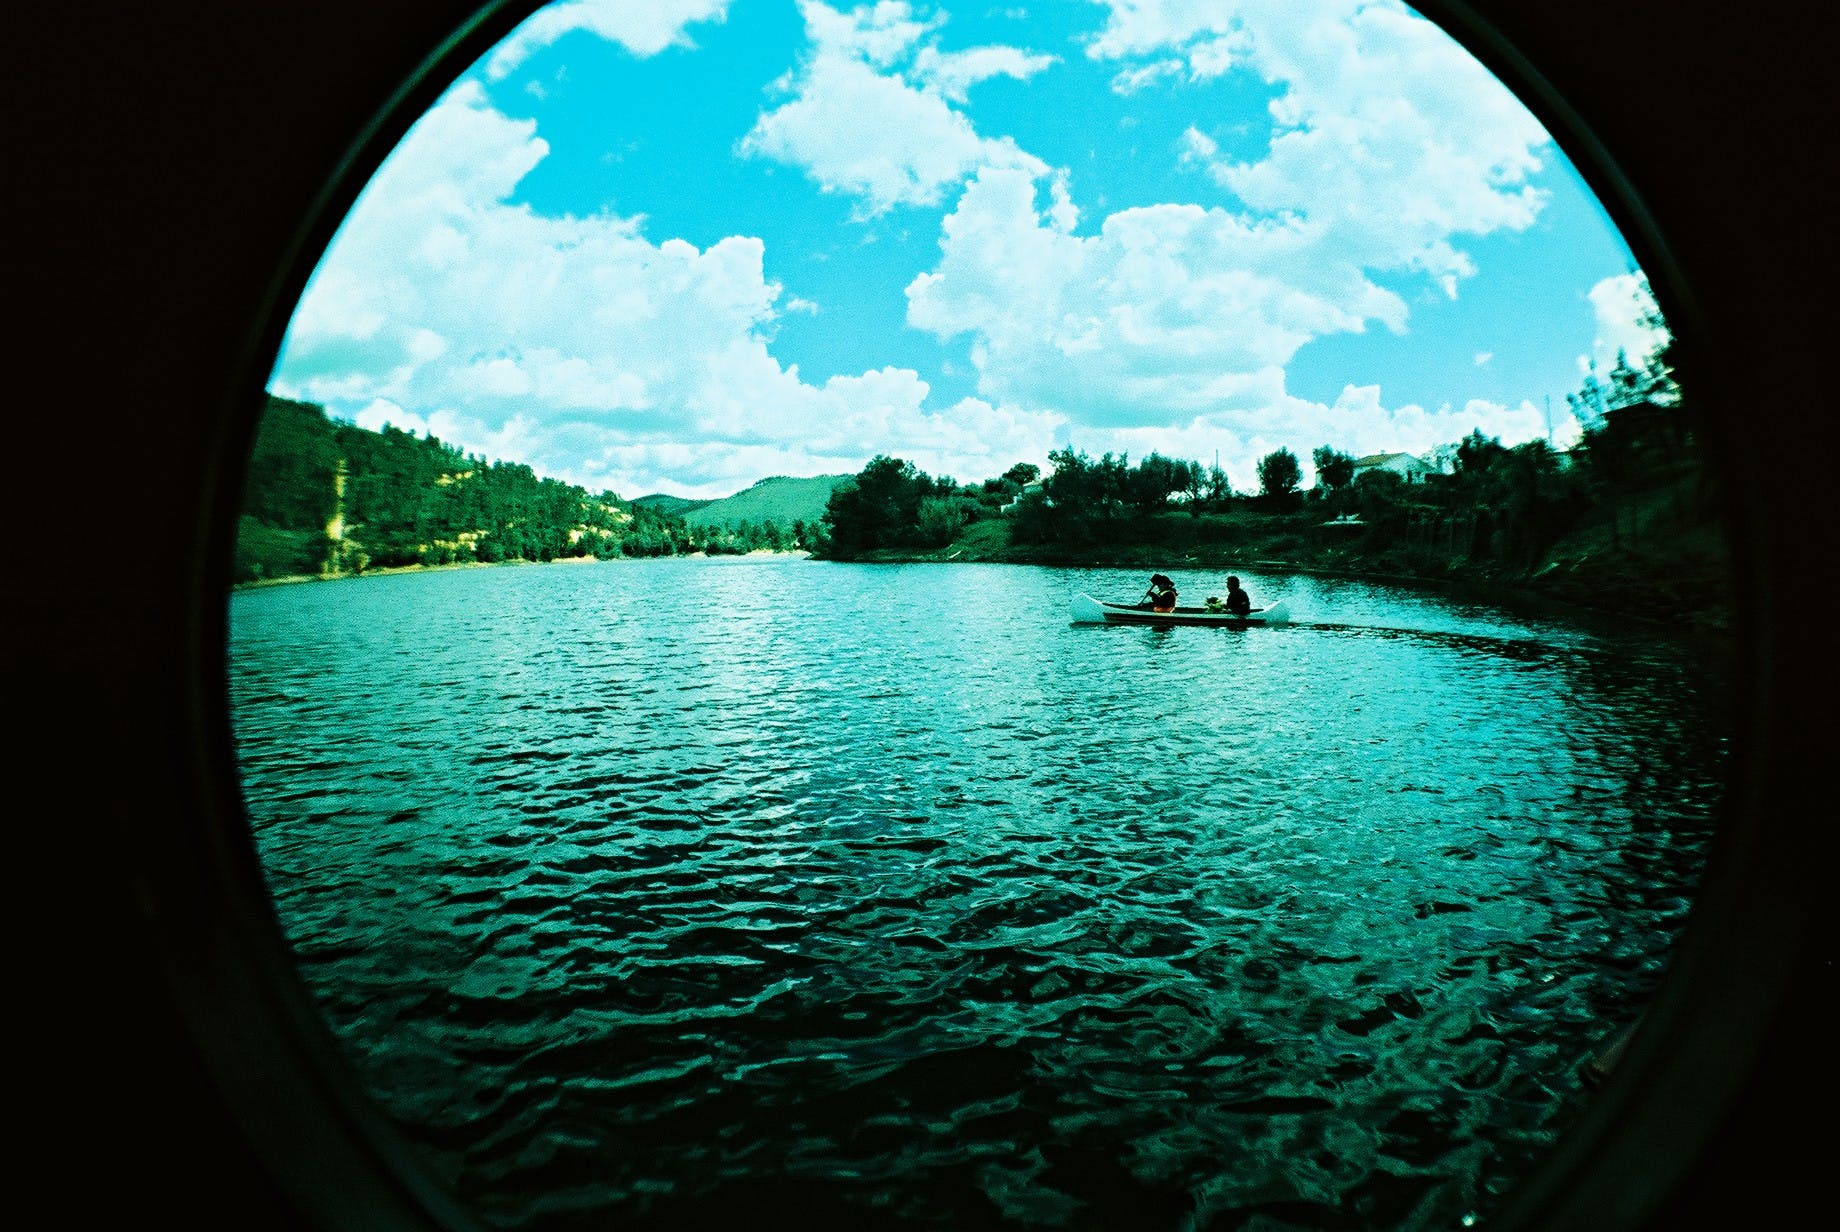 Fisheye Lens Photo of River